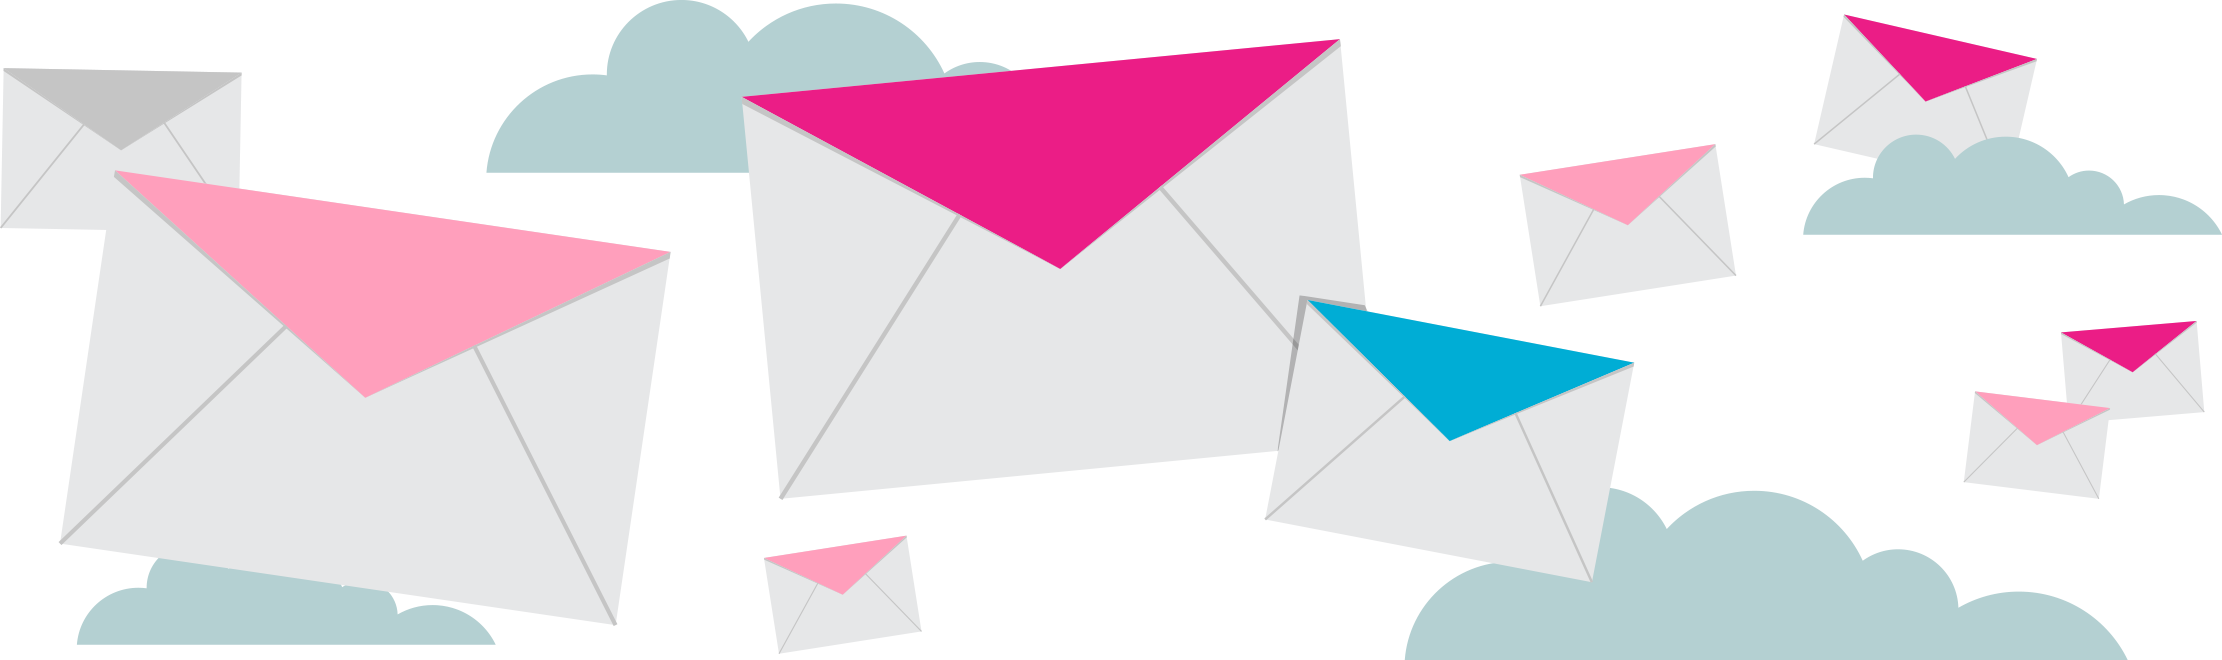 cloud-exchange-mail